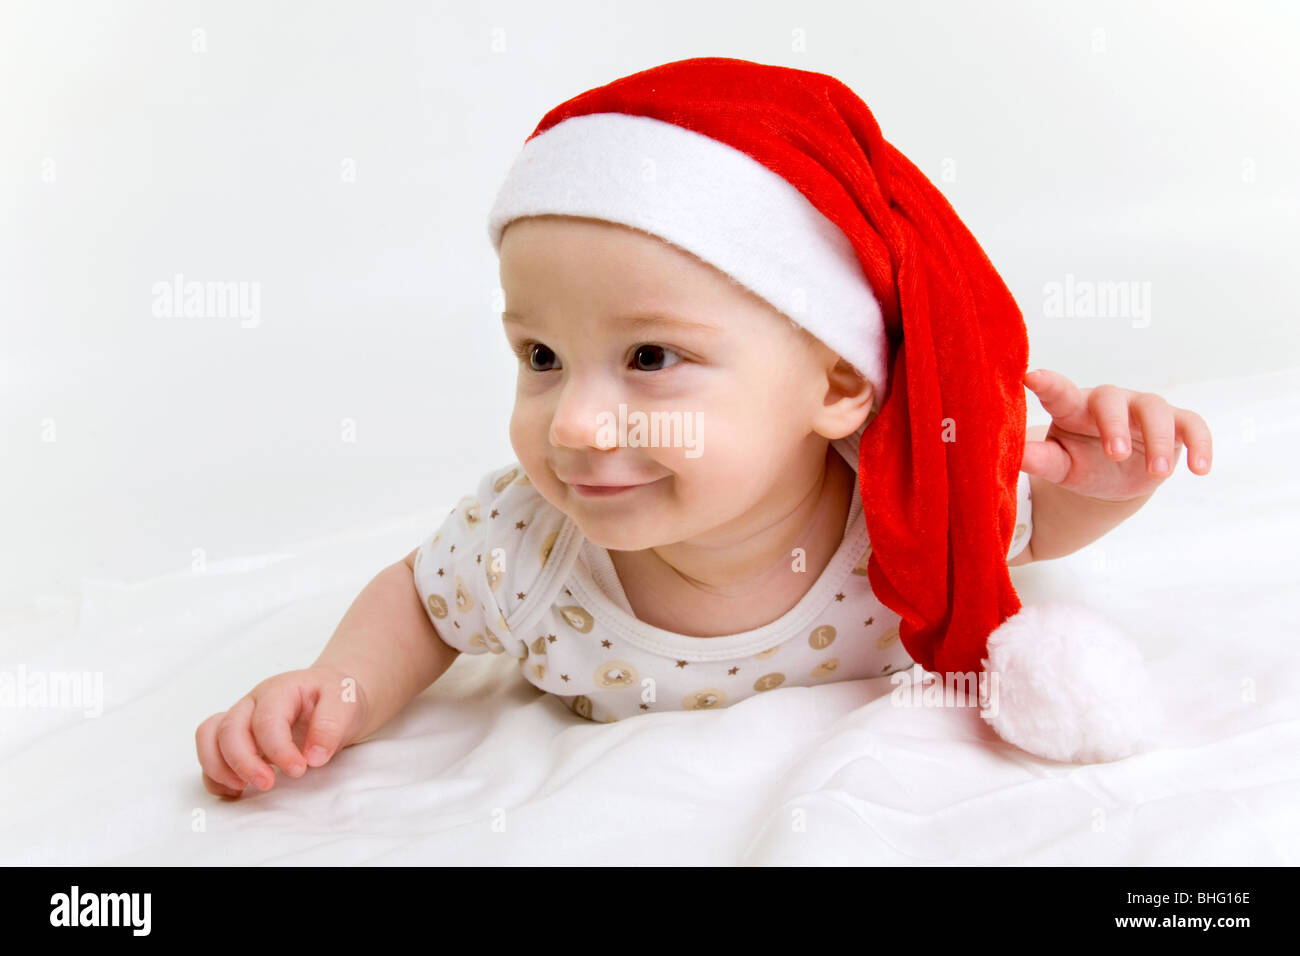 202a8e367 portrait of adorable baby boy in Santa hat on white background Stock ...